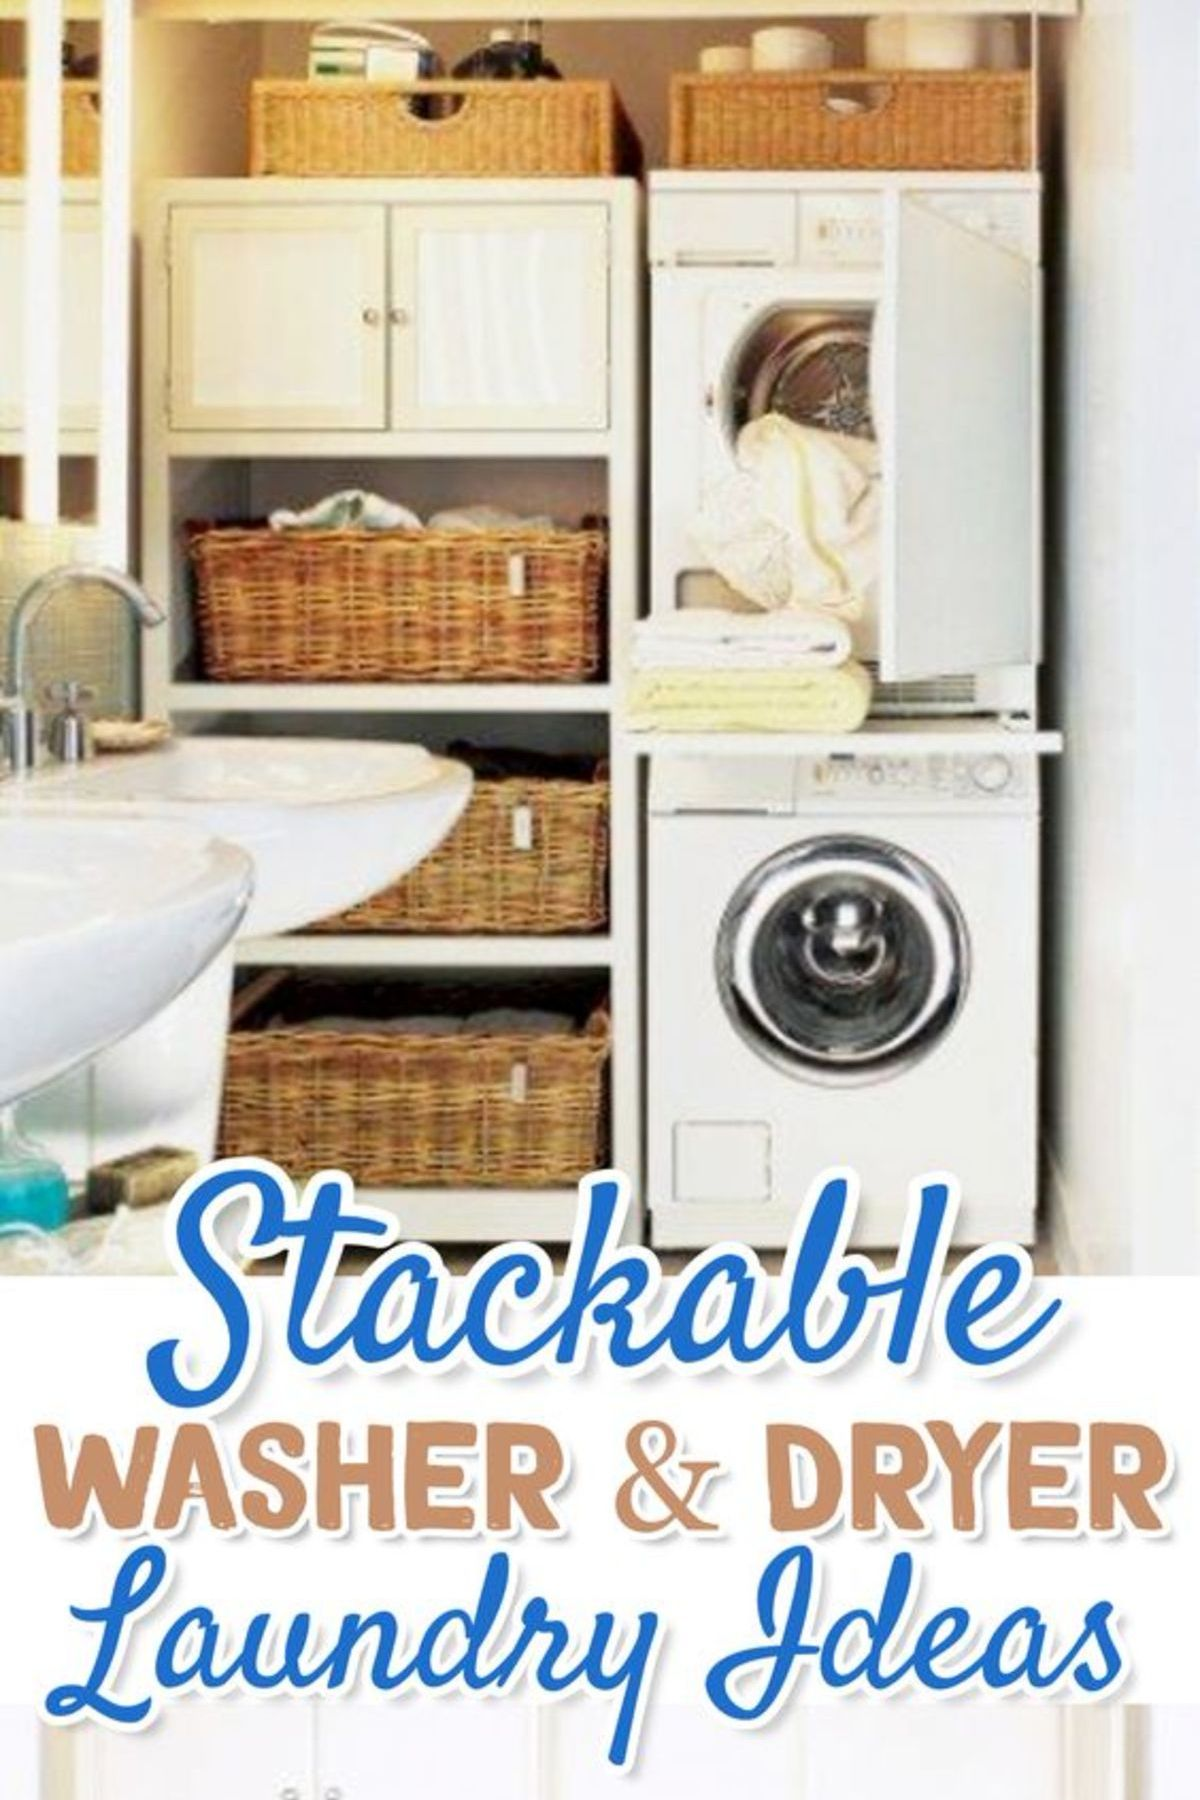 Small Laundry Room Ideas Space Saving Ideas For Tiny Laundry Rooms Creative And Simple Diy Small Laundry Rooms Laundry Room Storage Shelves Laundry Room Storage